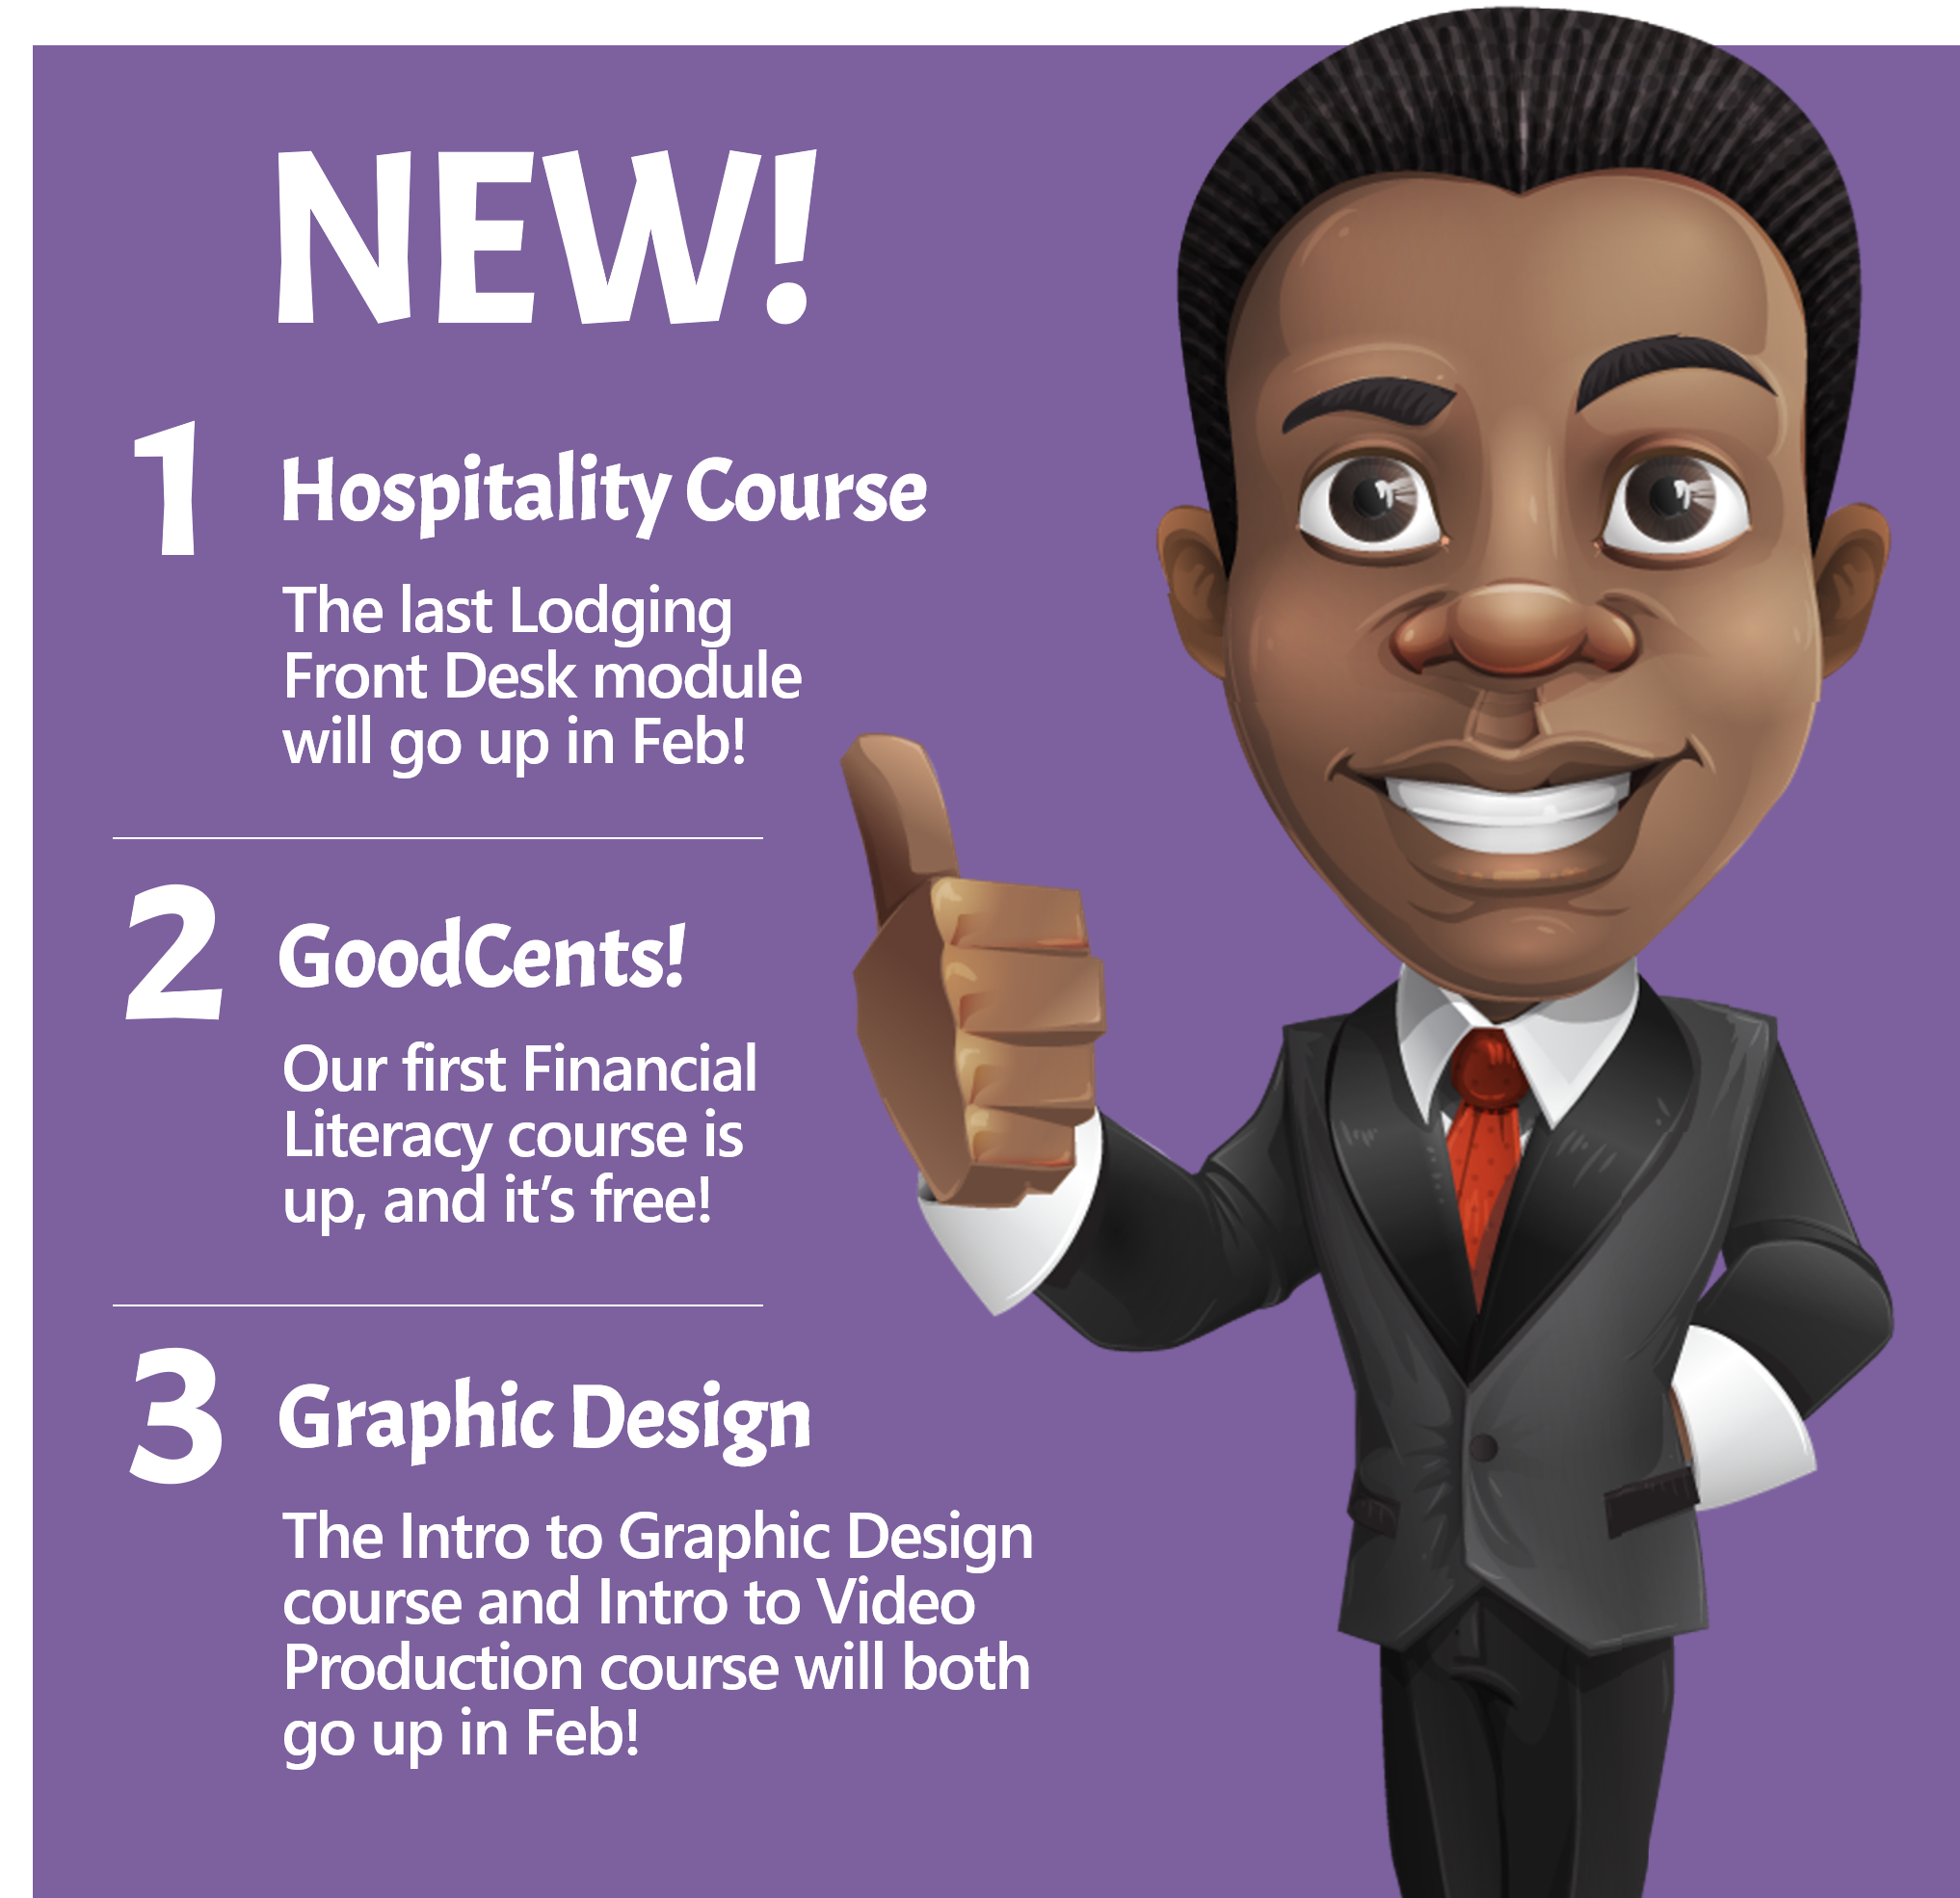 NEW! 1 ) Hospitality Course! The last Lodging Front Desk module will go up in February 2) GoodCents! Our first financial literacy course is up and it's free! 3) Graphic Design. The Intro to Graphic Design course and Intro to Video Production course will both go up in Feb!